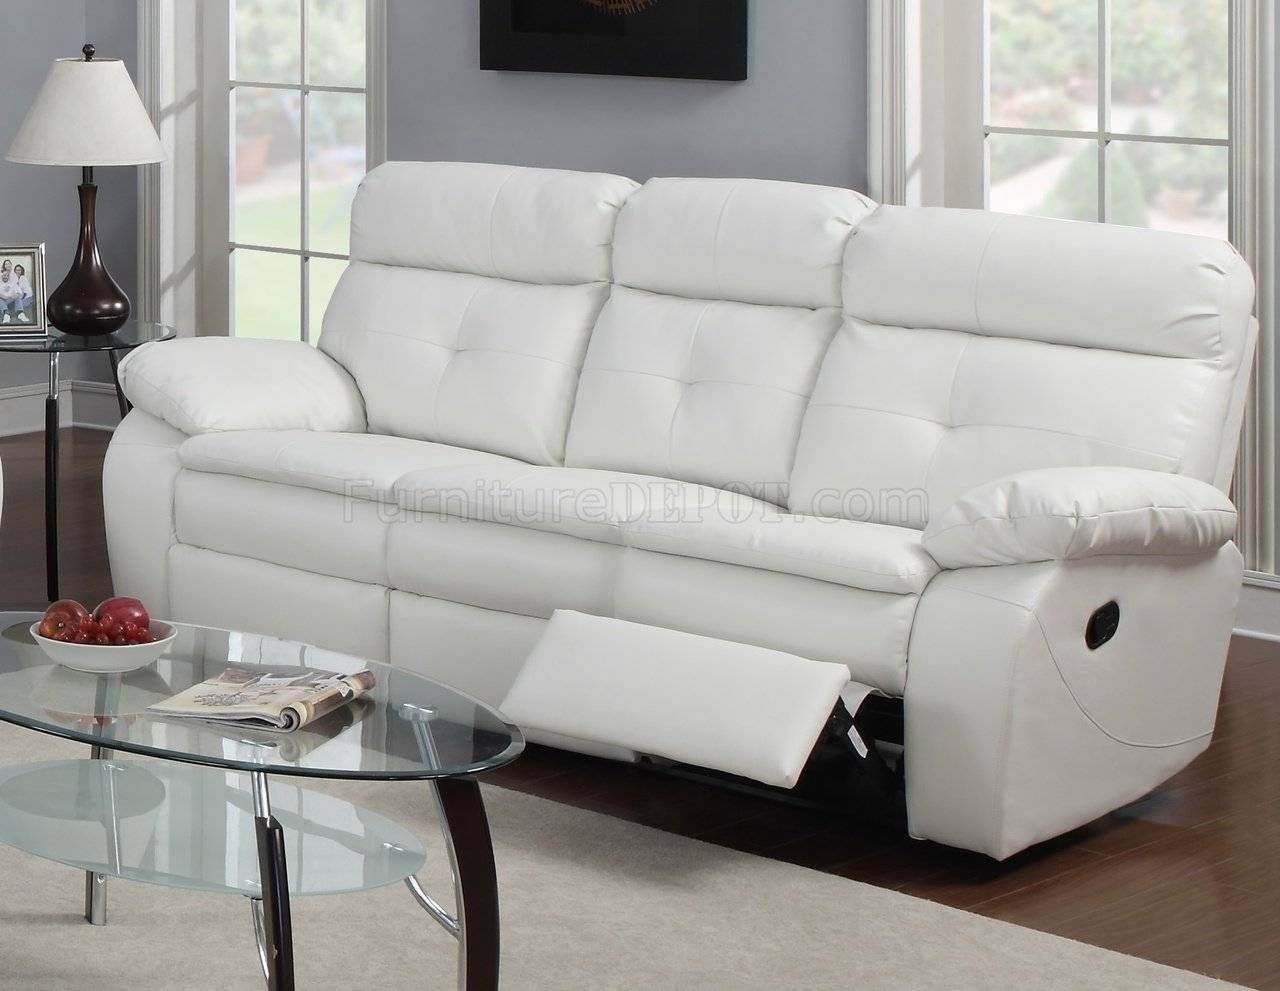 White Leather Sectional Recliner intended for Off White Leather Sofa and Loveseat (Image 29 of 30)